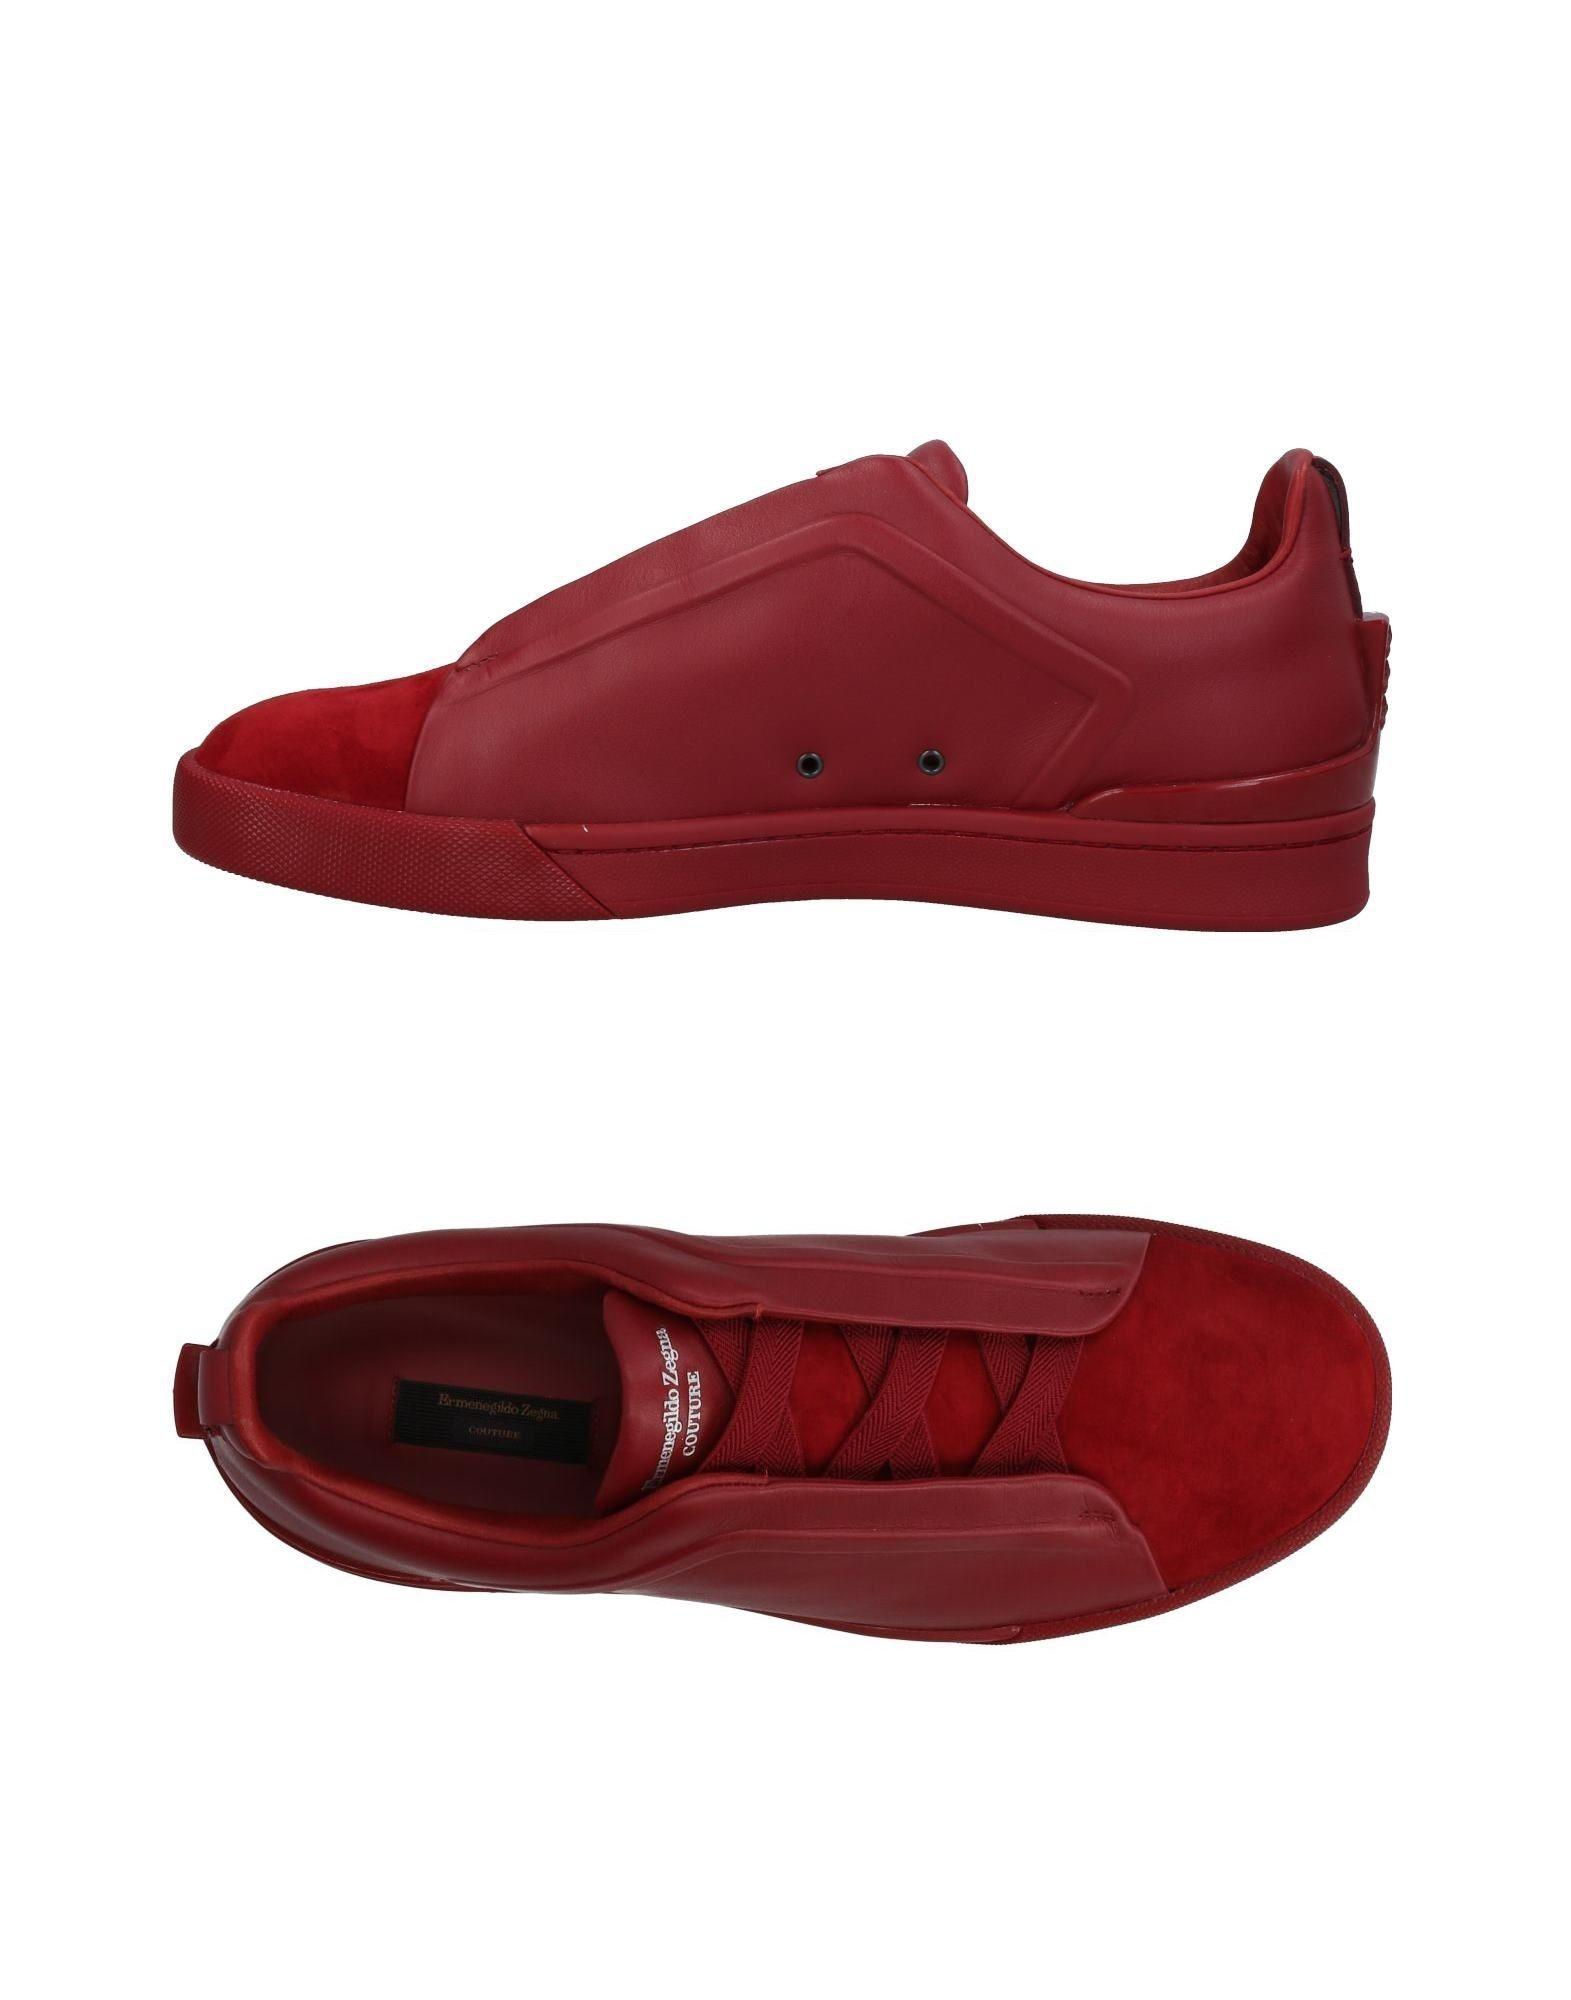 Ermenegildo Zegna Sneakers In Red